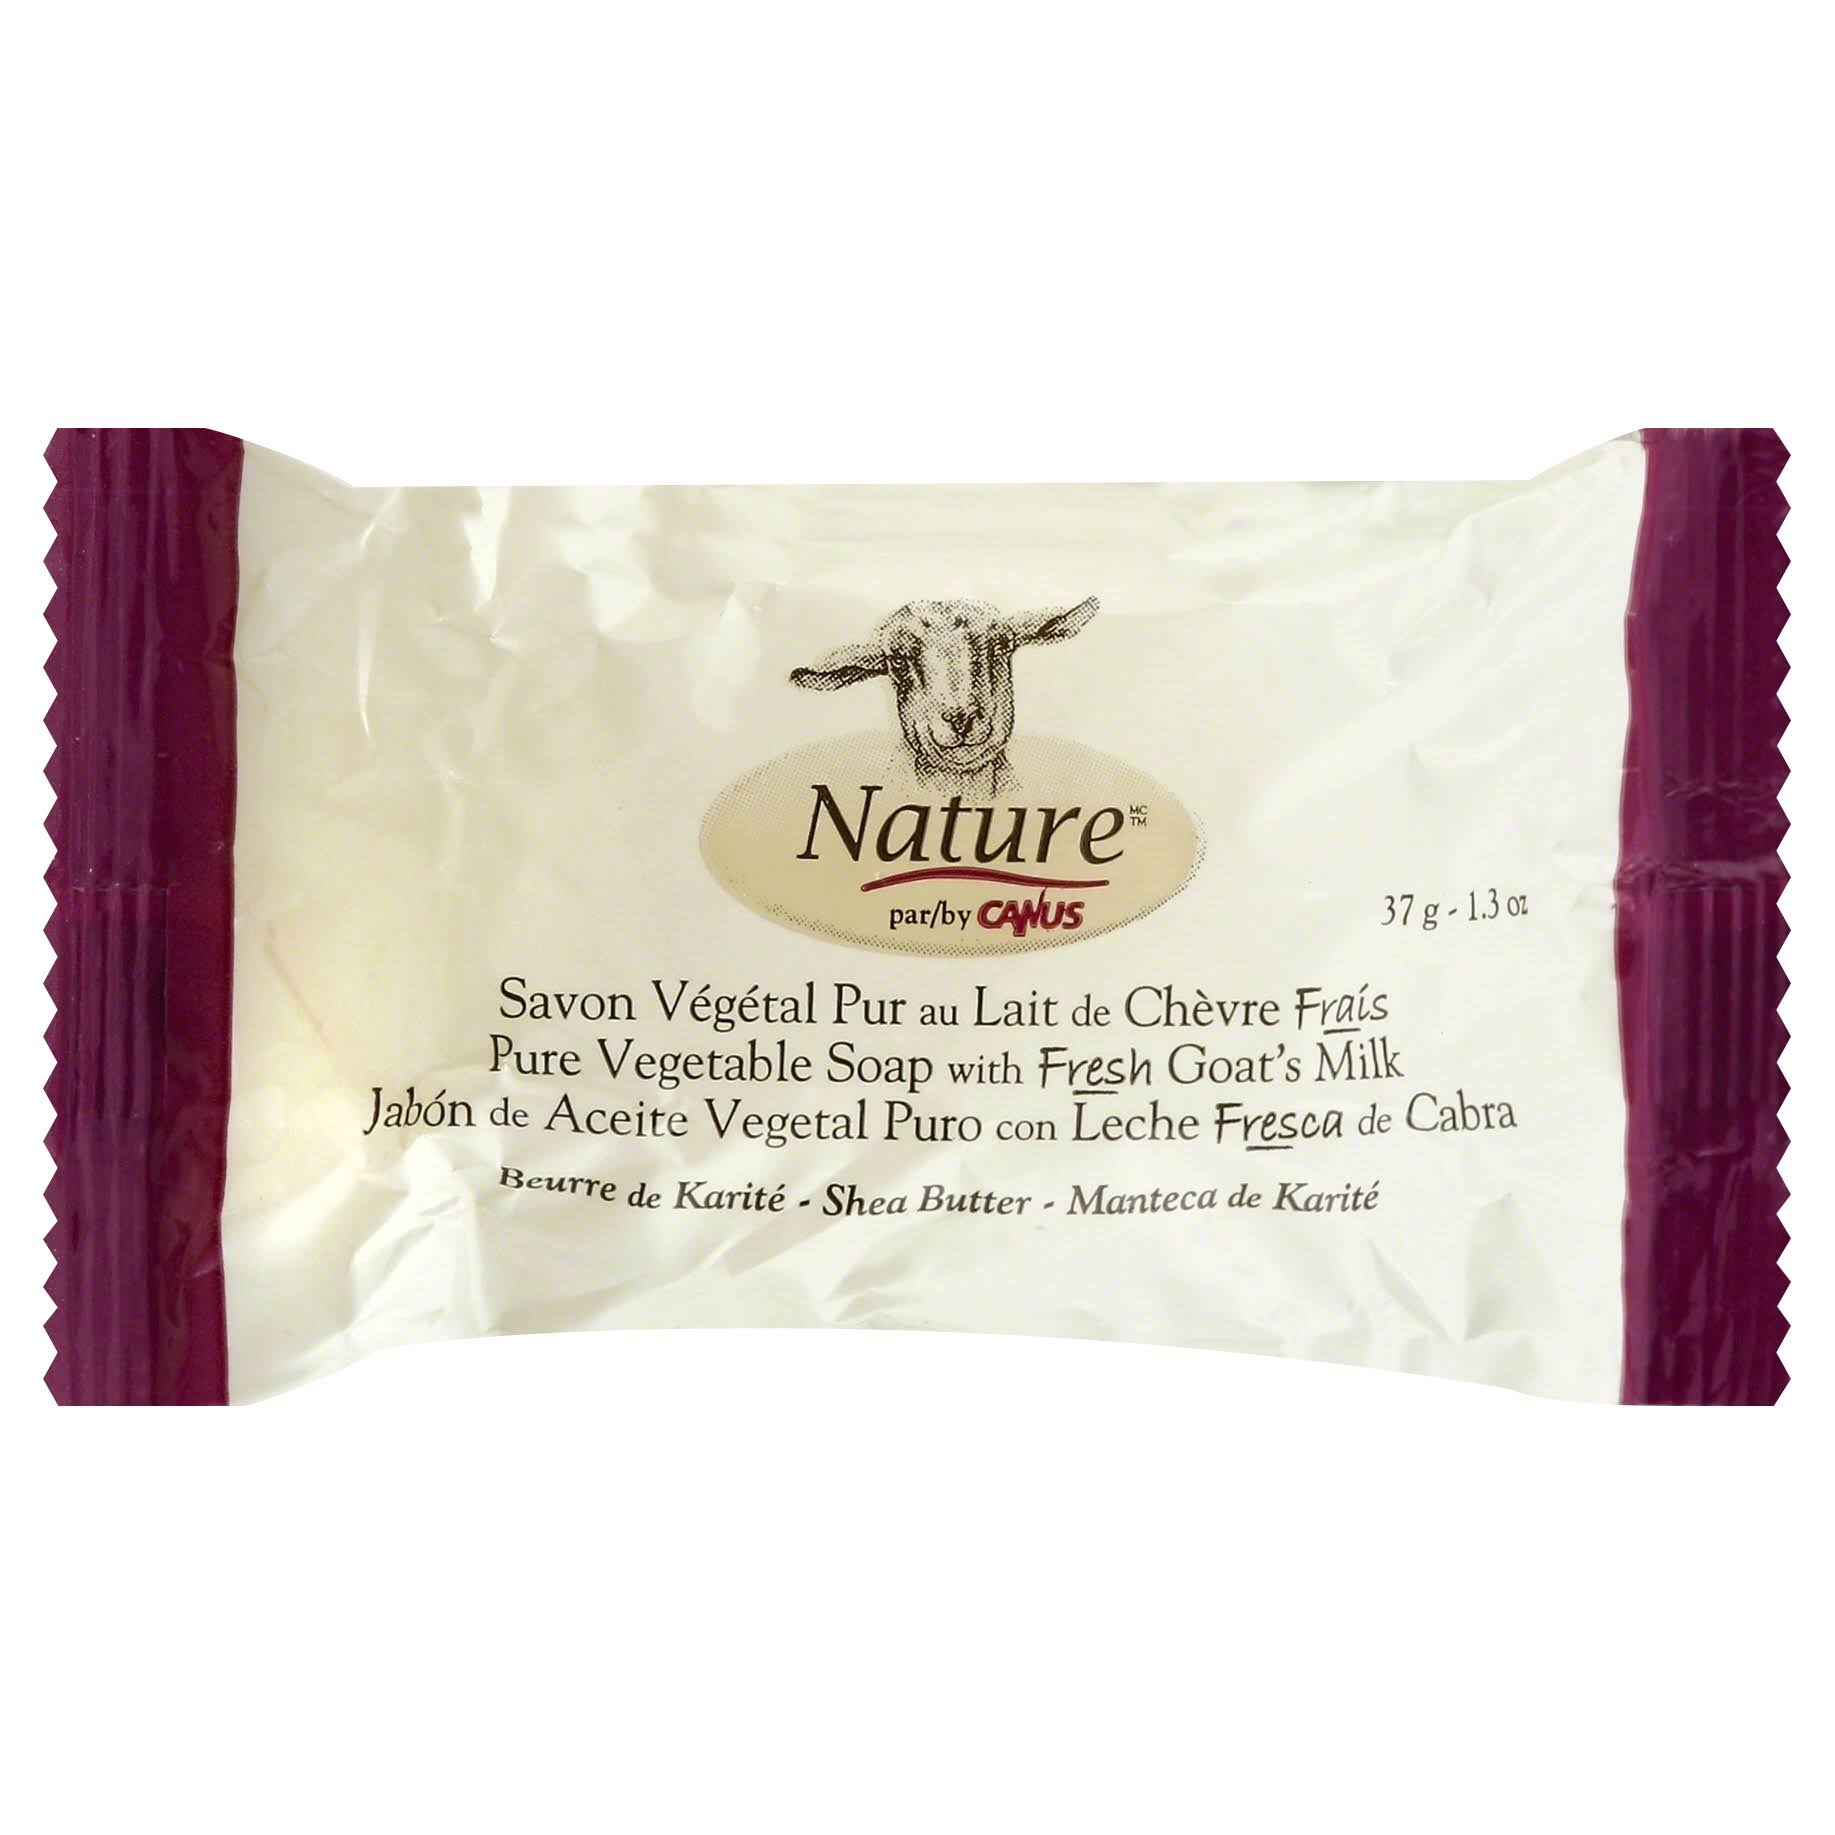 Nature Soap, Pure Vegetable, Shea Butter - 1.3 oz